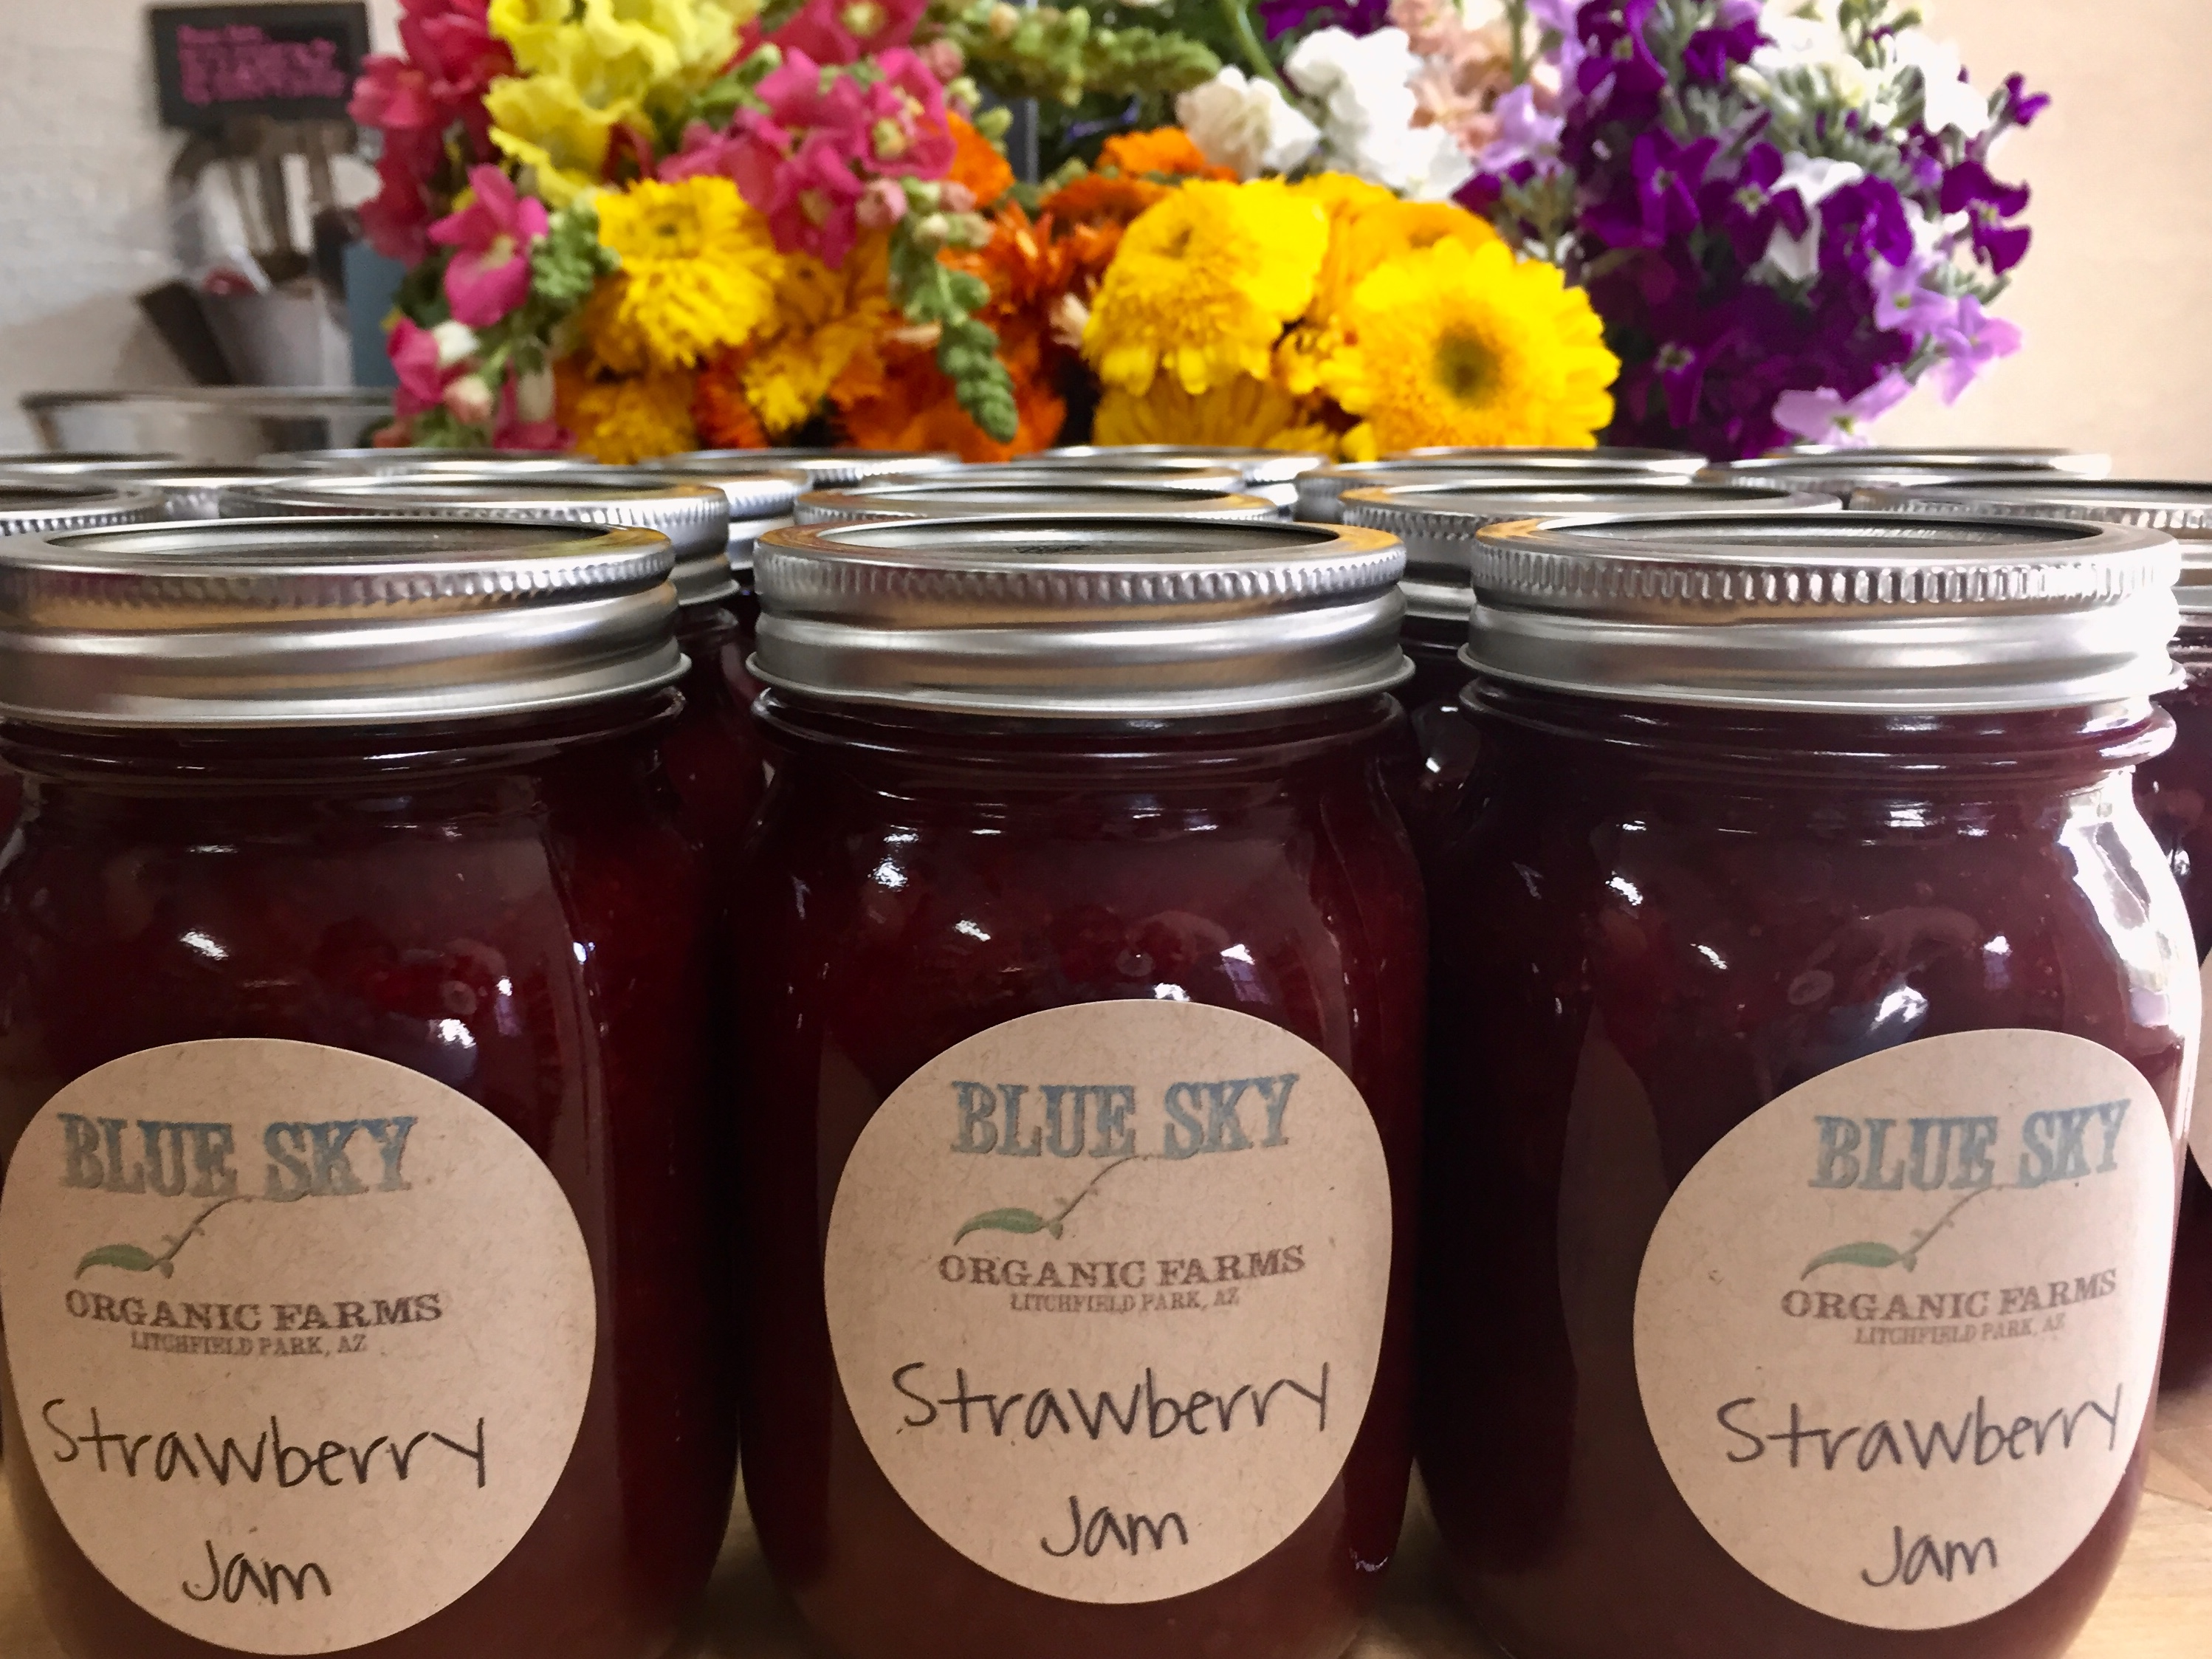 http://blueskyorganicfarms.com/wp-content/uploads/2018/02/Blue-Sky-Strawberry-Jam.jpg